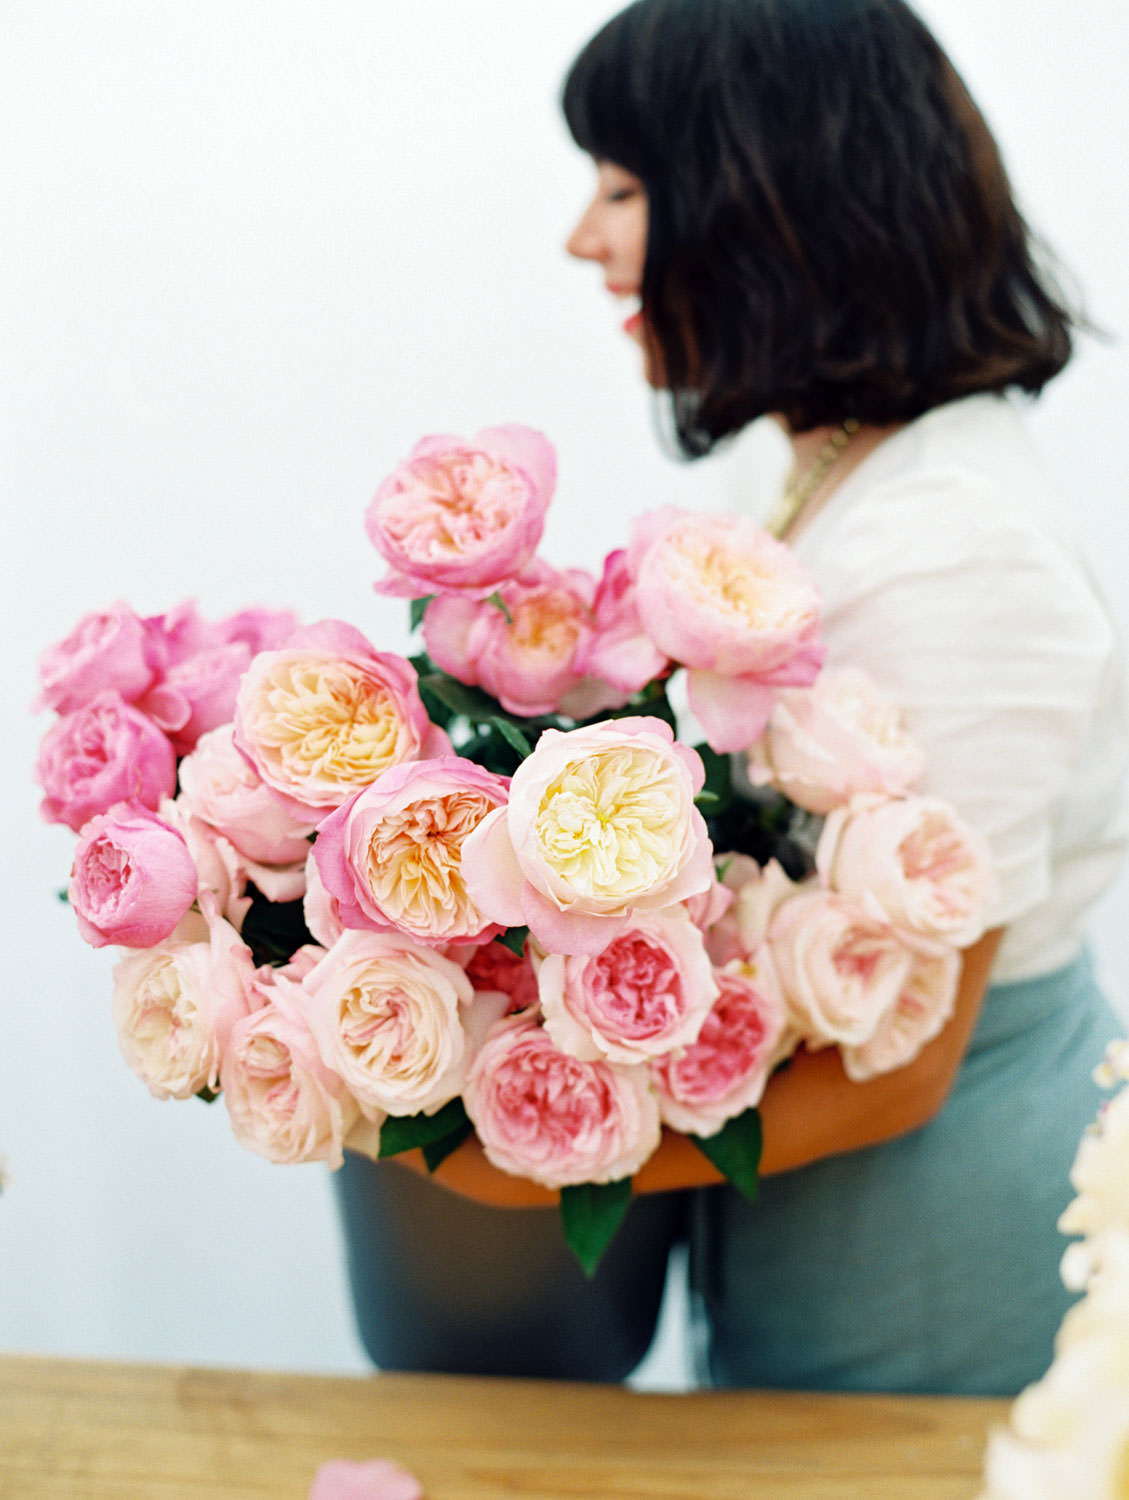 Bucket of David Austin pink roses. Centerpiece flower arranging workshop by Bows and Arrows flowers on the Flutter Magazine Retreat in the Cotswolds. Film by Cavin Elizabeth Photography